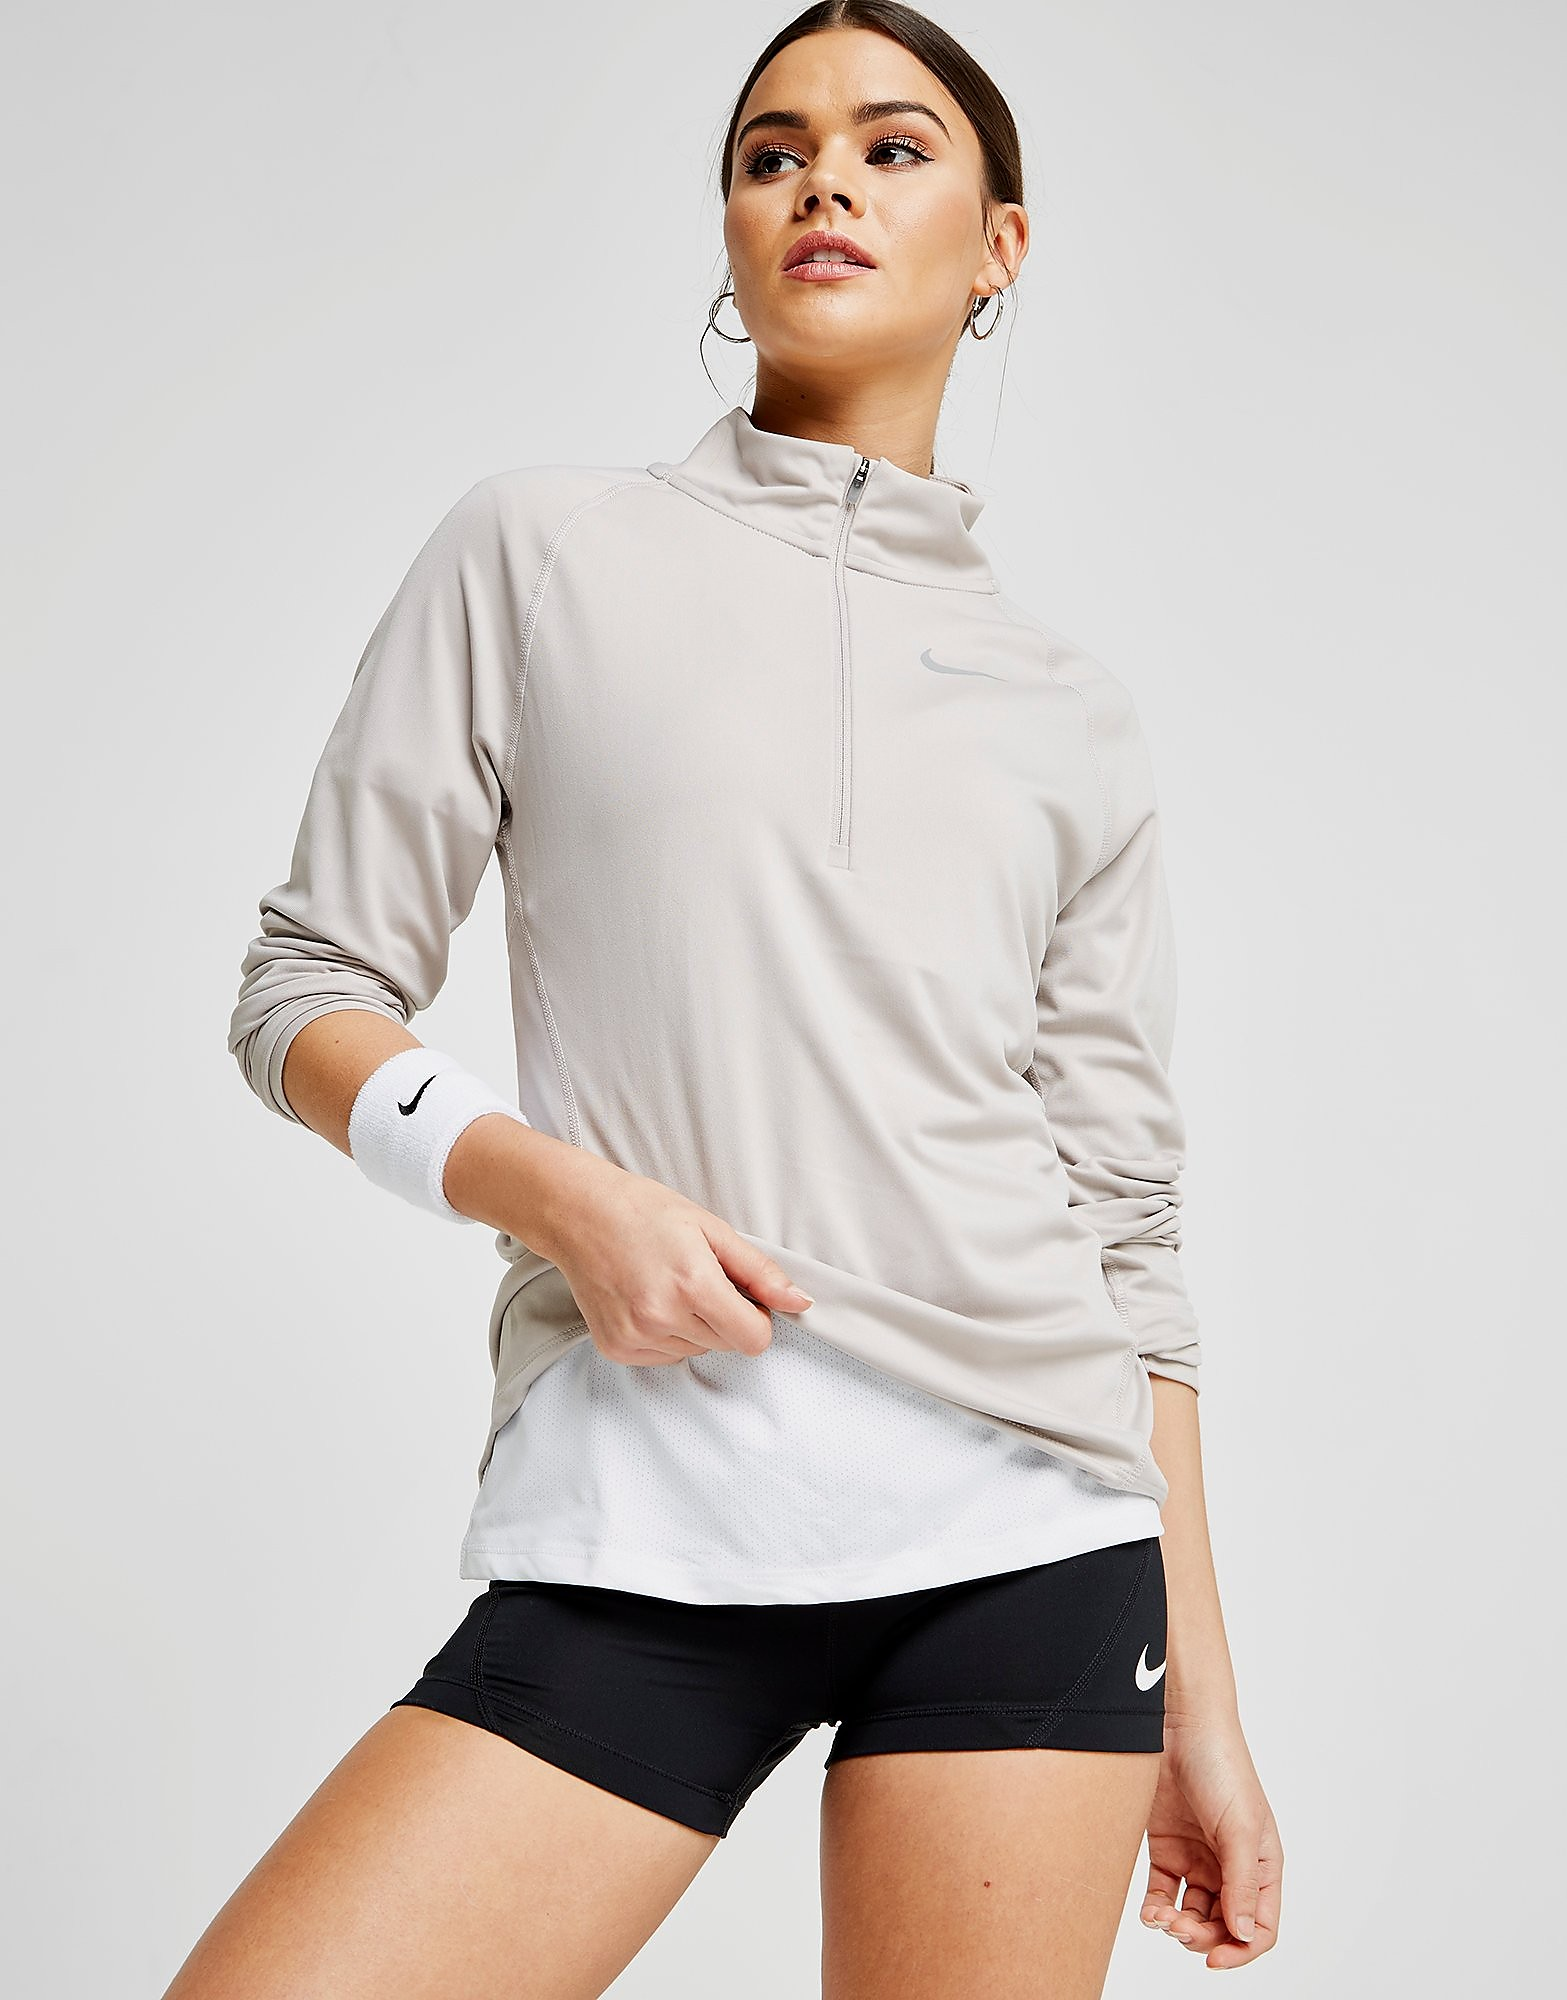 Nike Core Running Top